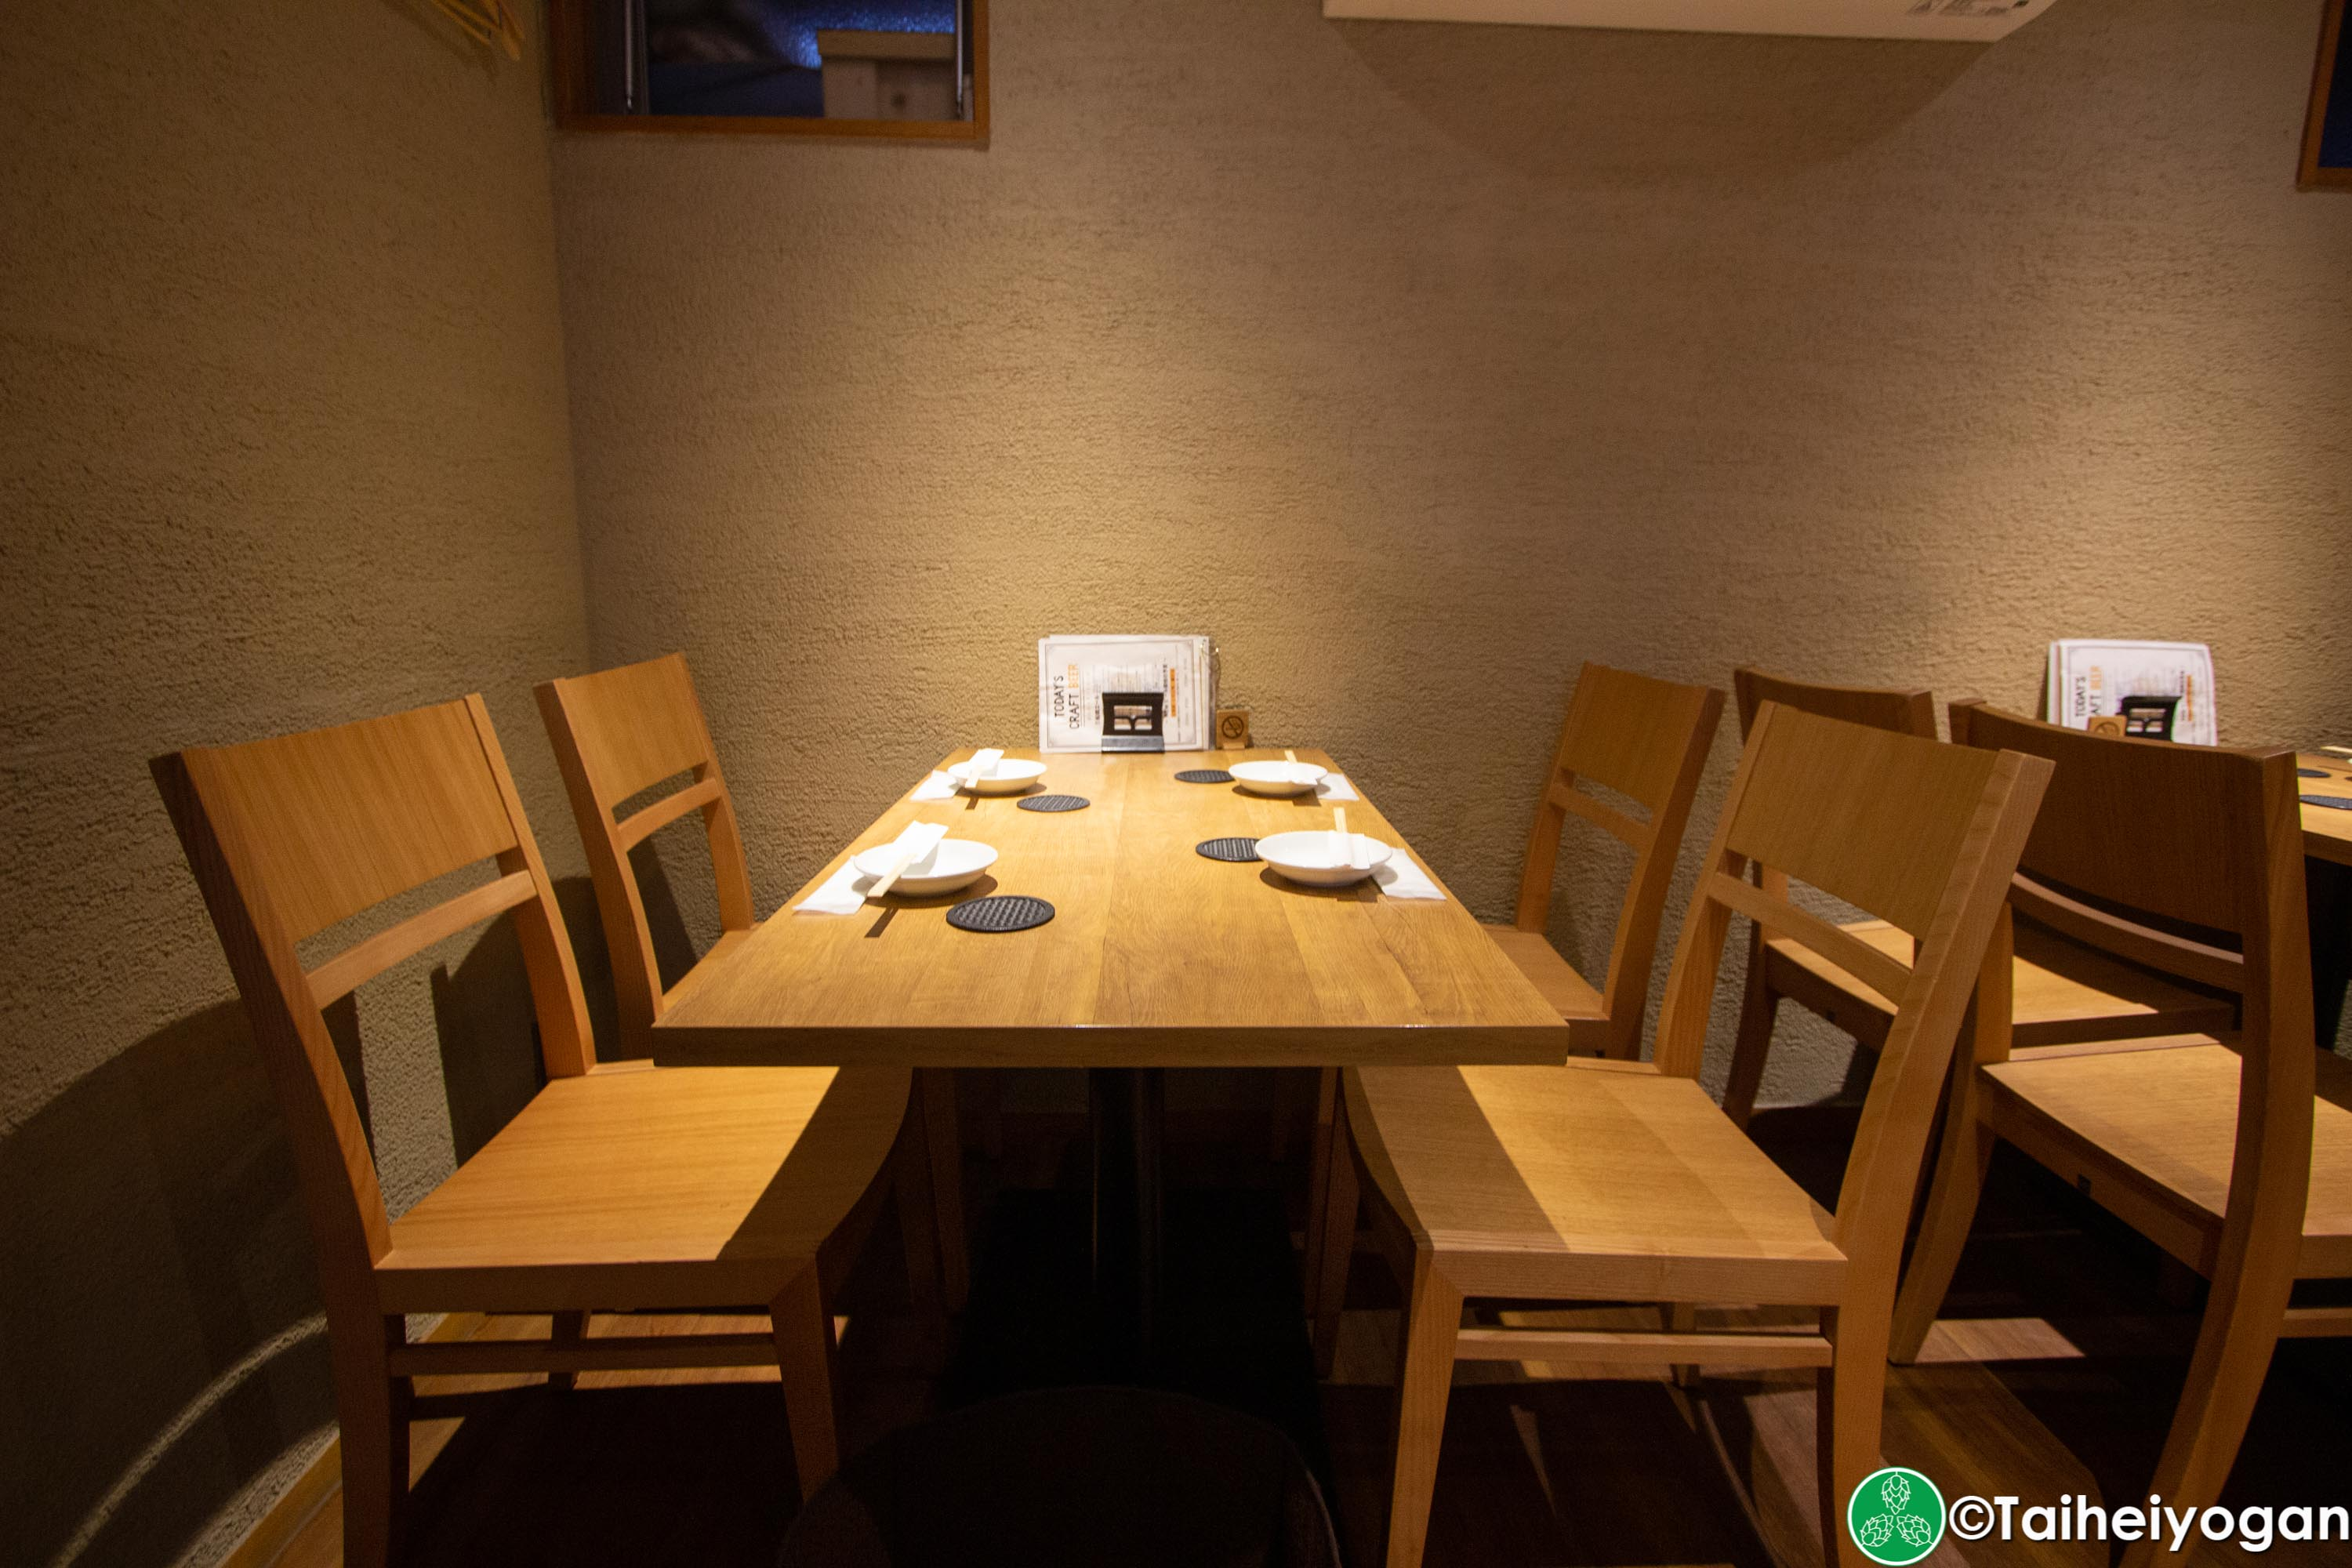 Funabashi Beer - 船橋ビール醸造所 - Interior - Table Seating